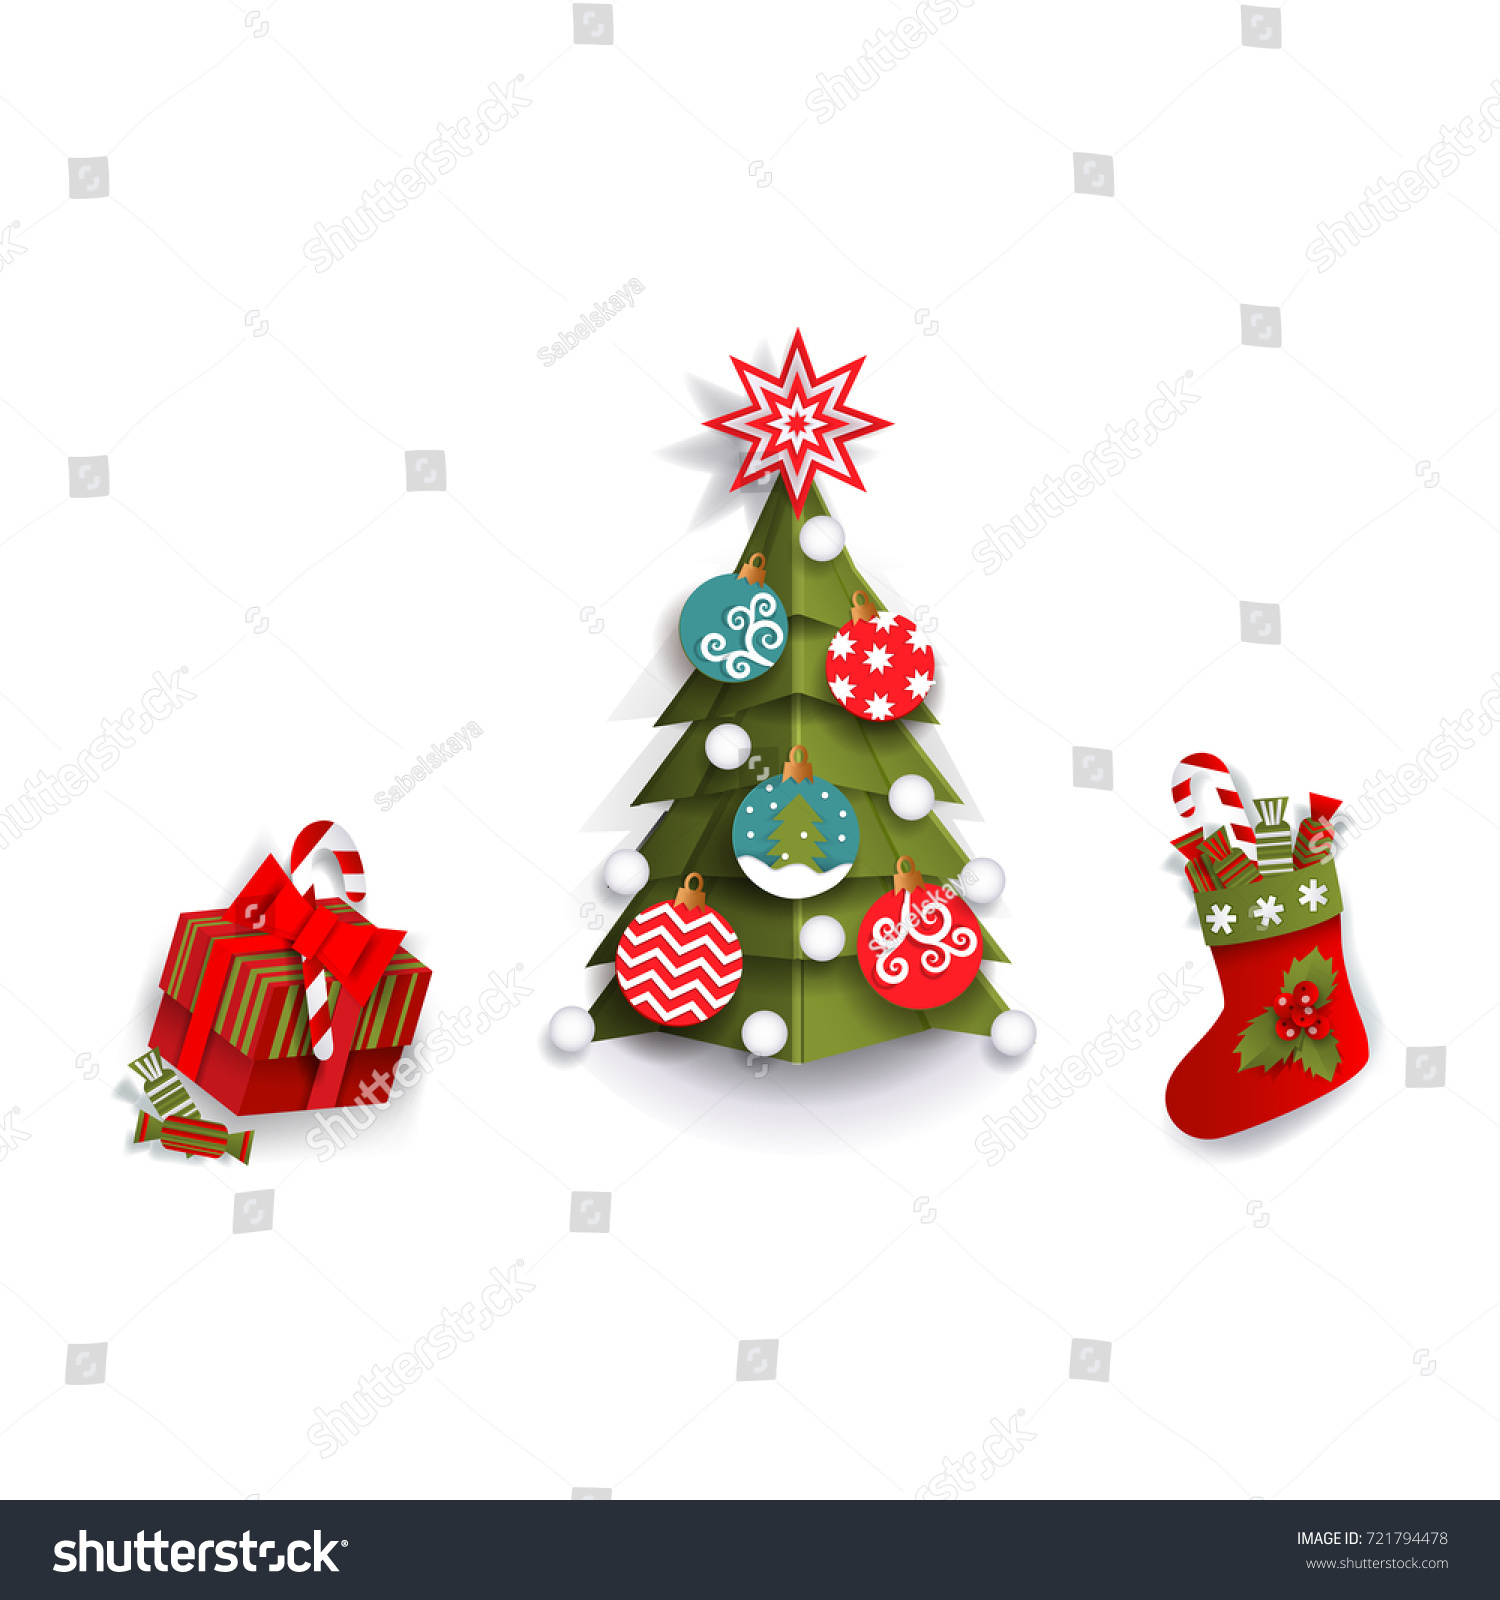 Paper Cut Christmas Tree Stocking Present Stock Vector (Royalty Free ...